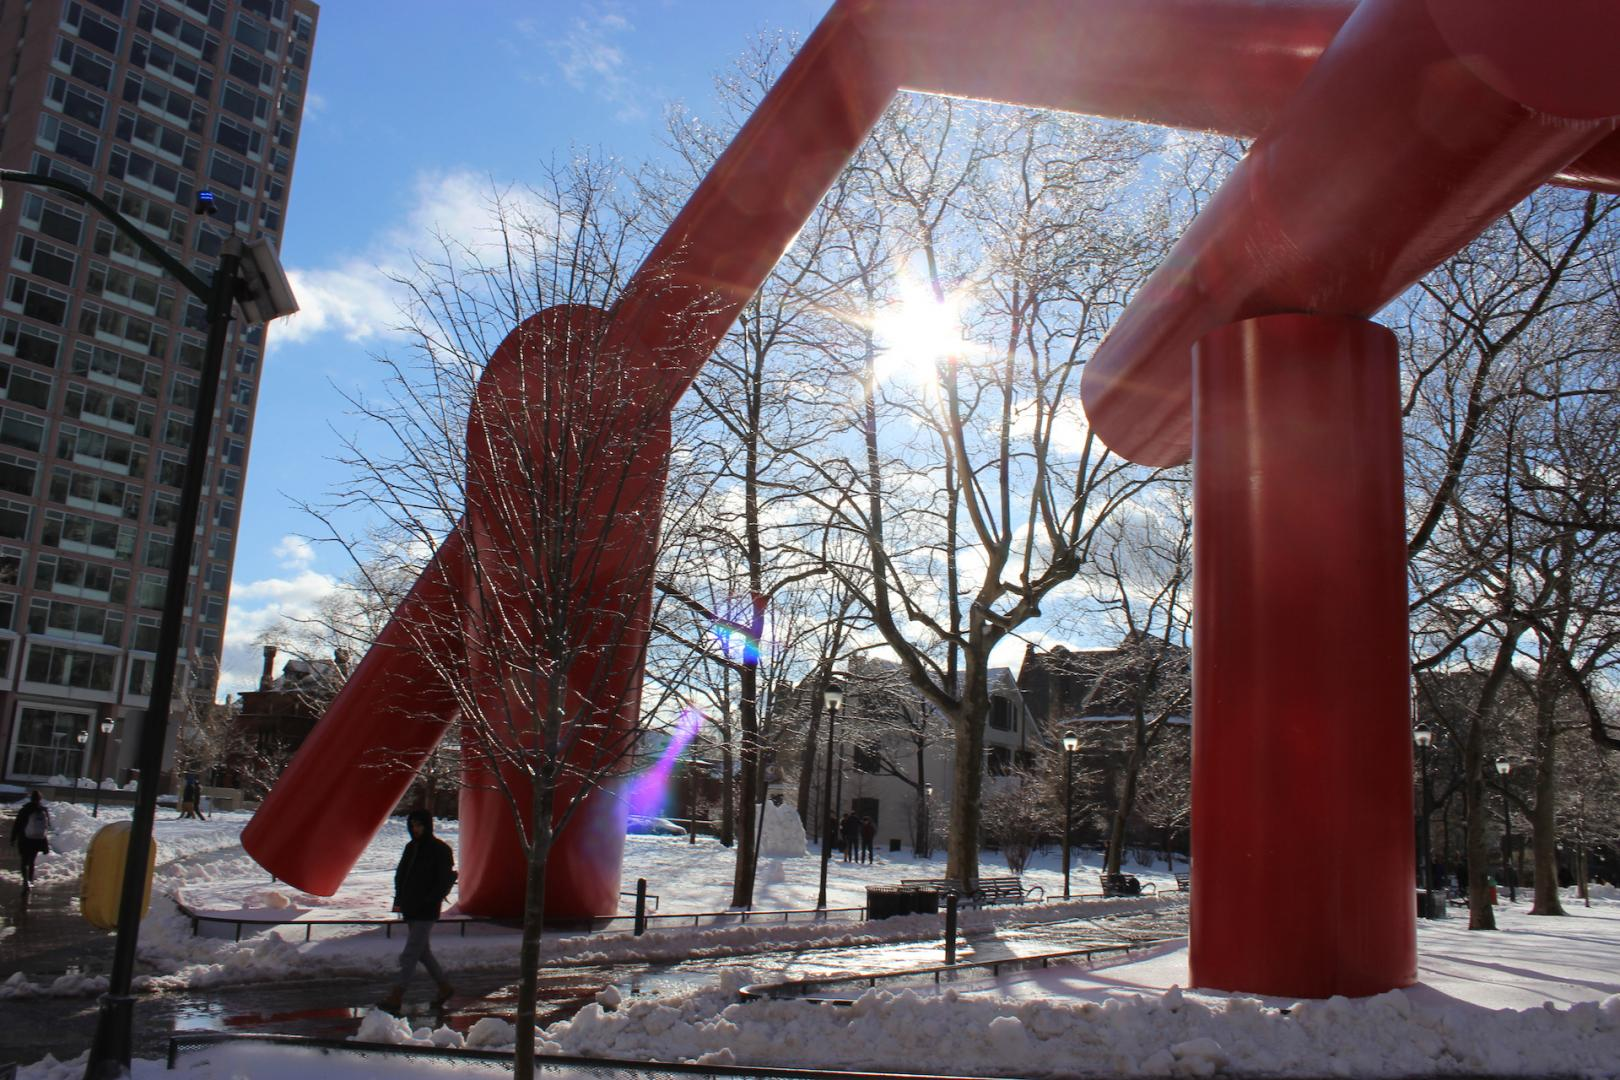 The Covenant Statue on Locust Walk in the snow